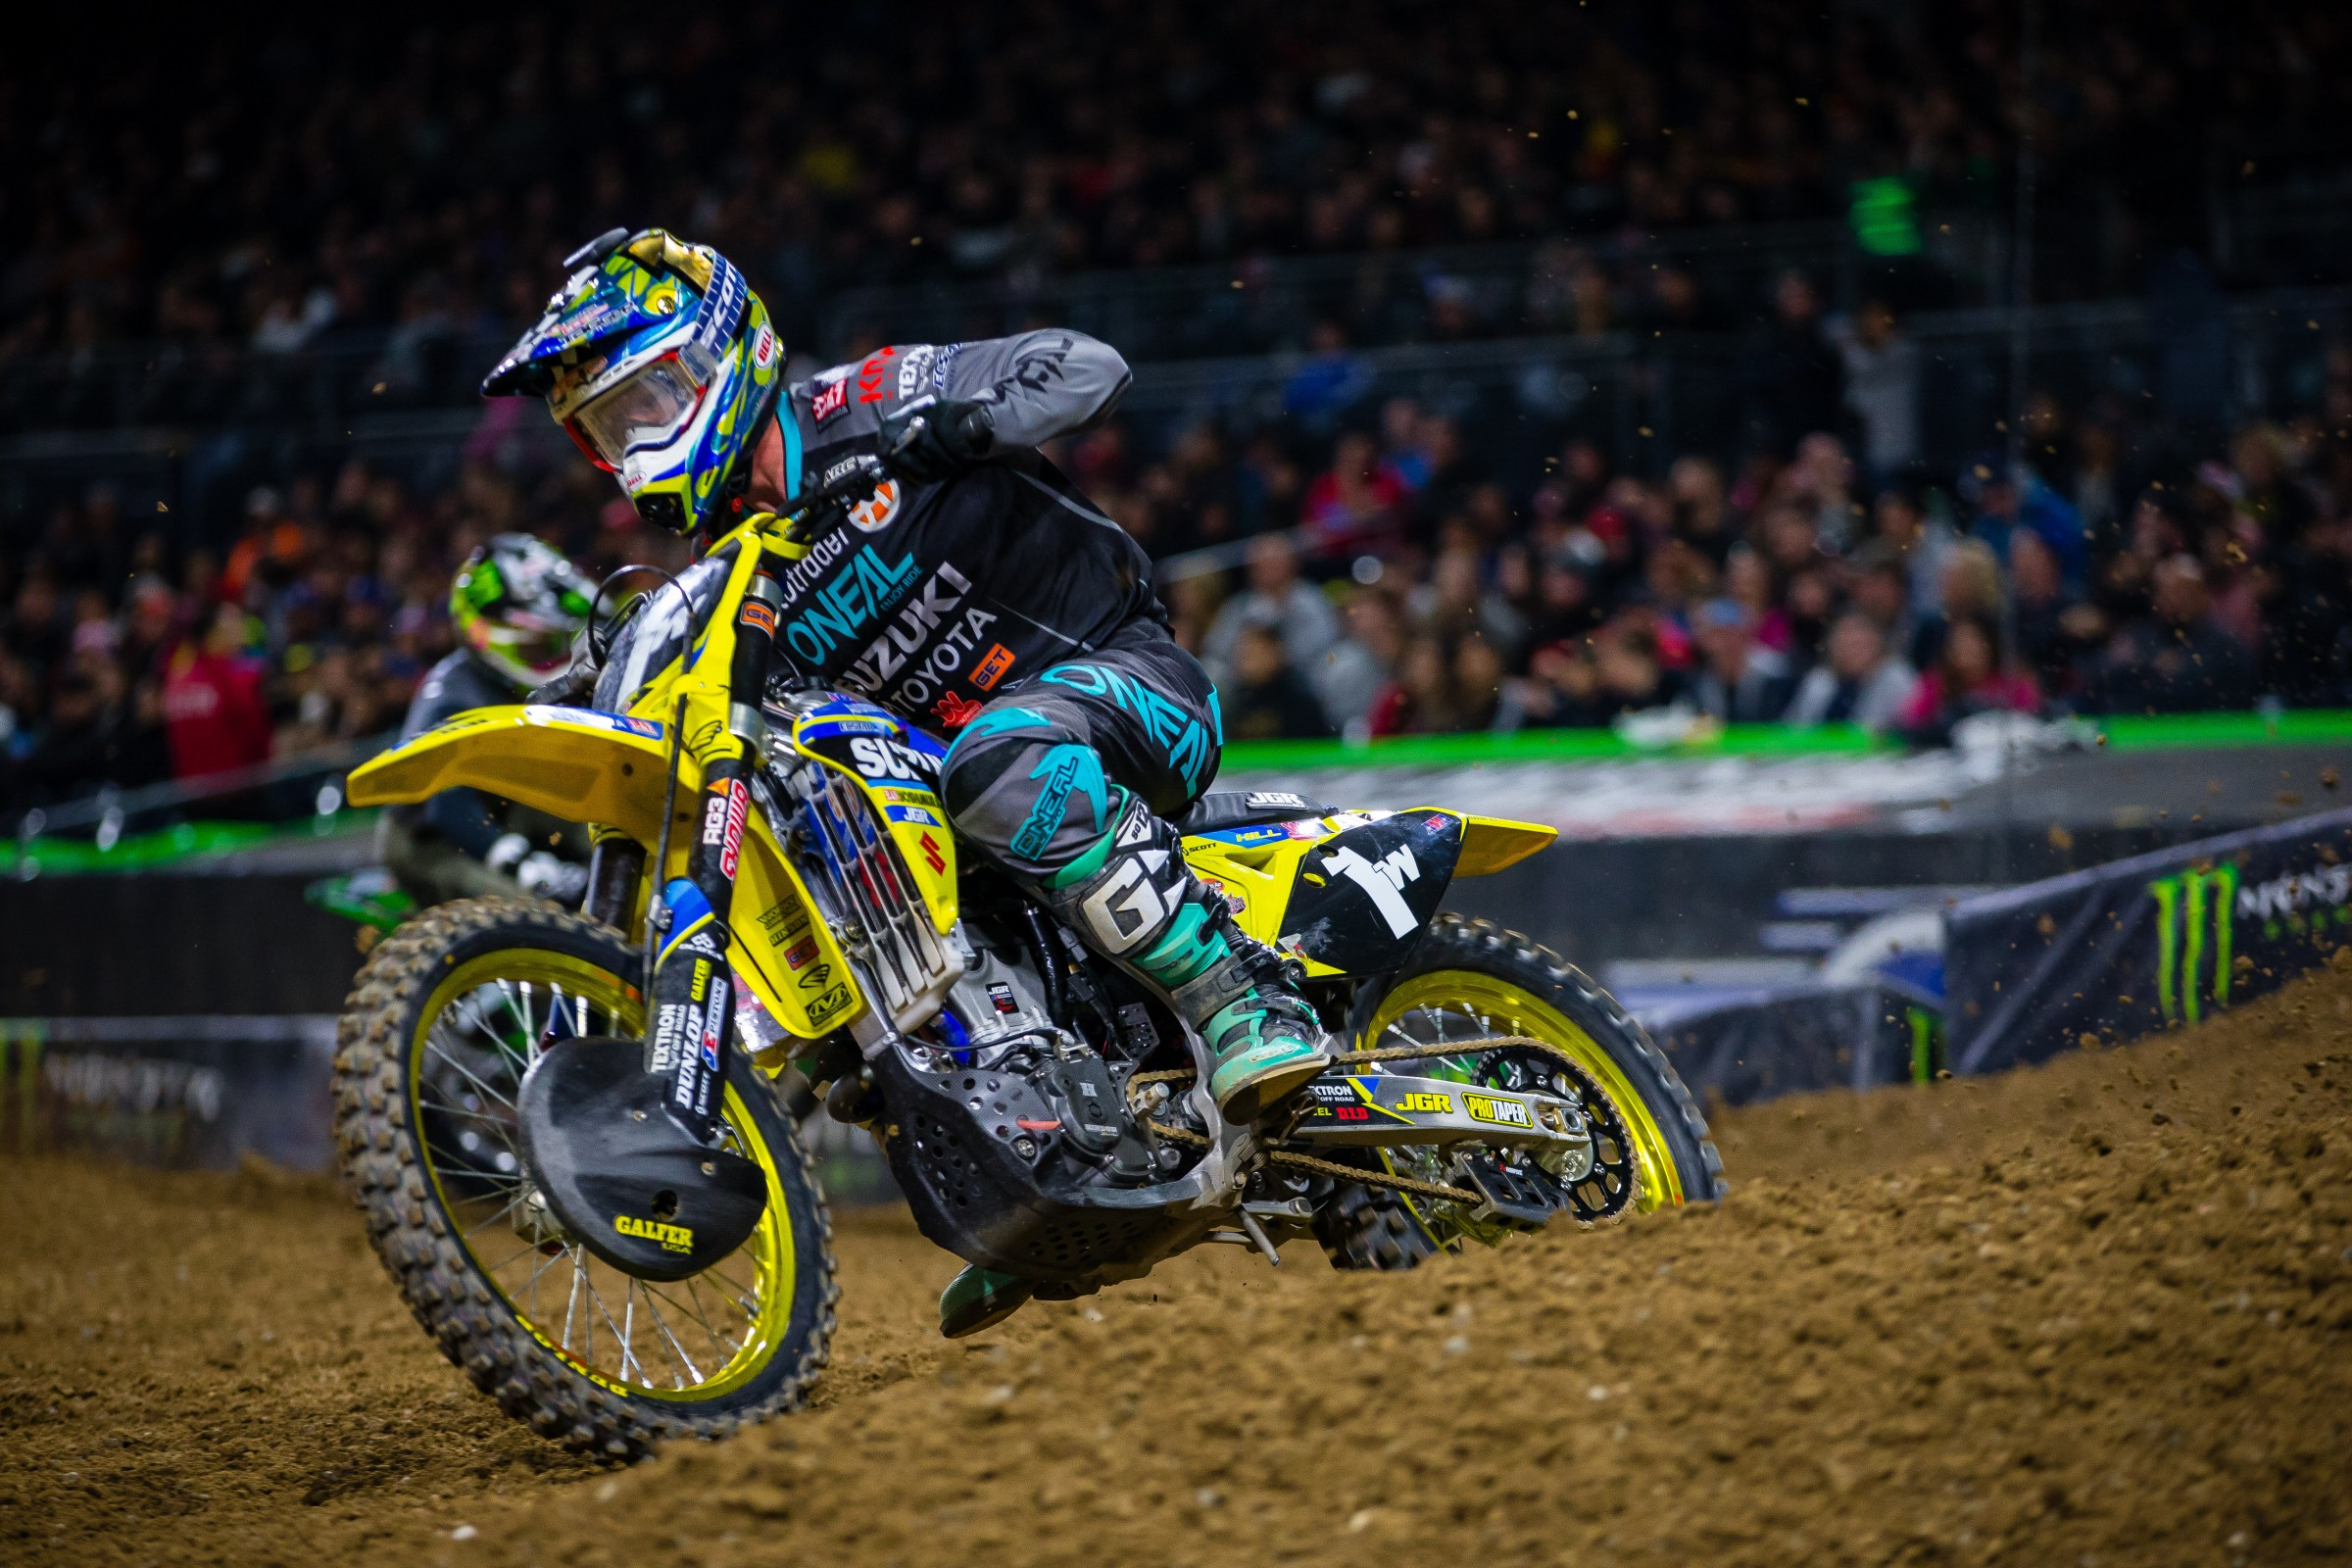 Hill, who moonlighted in 450SX earlier this year, will move up to the premiere class in 2019.